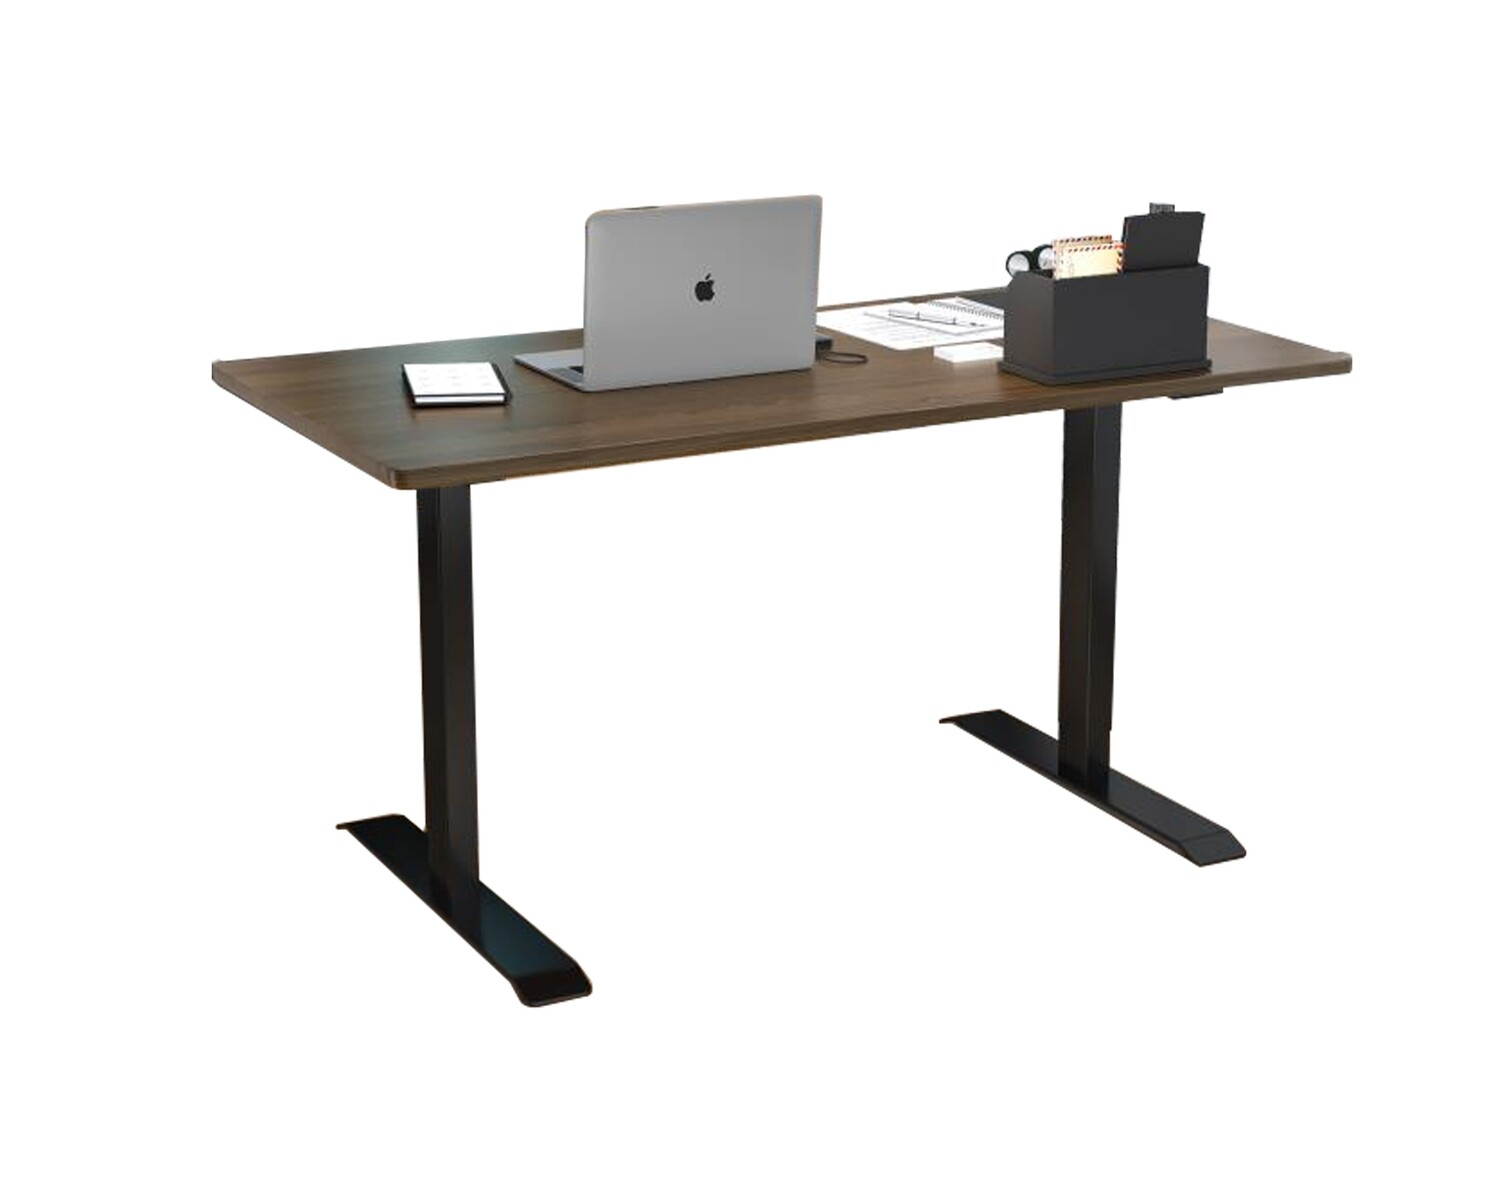 Ofix HDF101 (120x60, 150x75) Electric Height Adjustable Dual Motor Desk